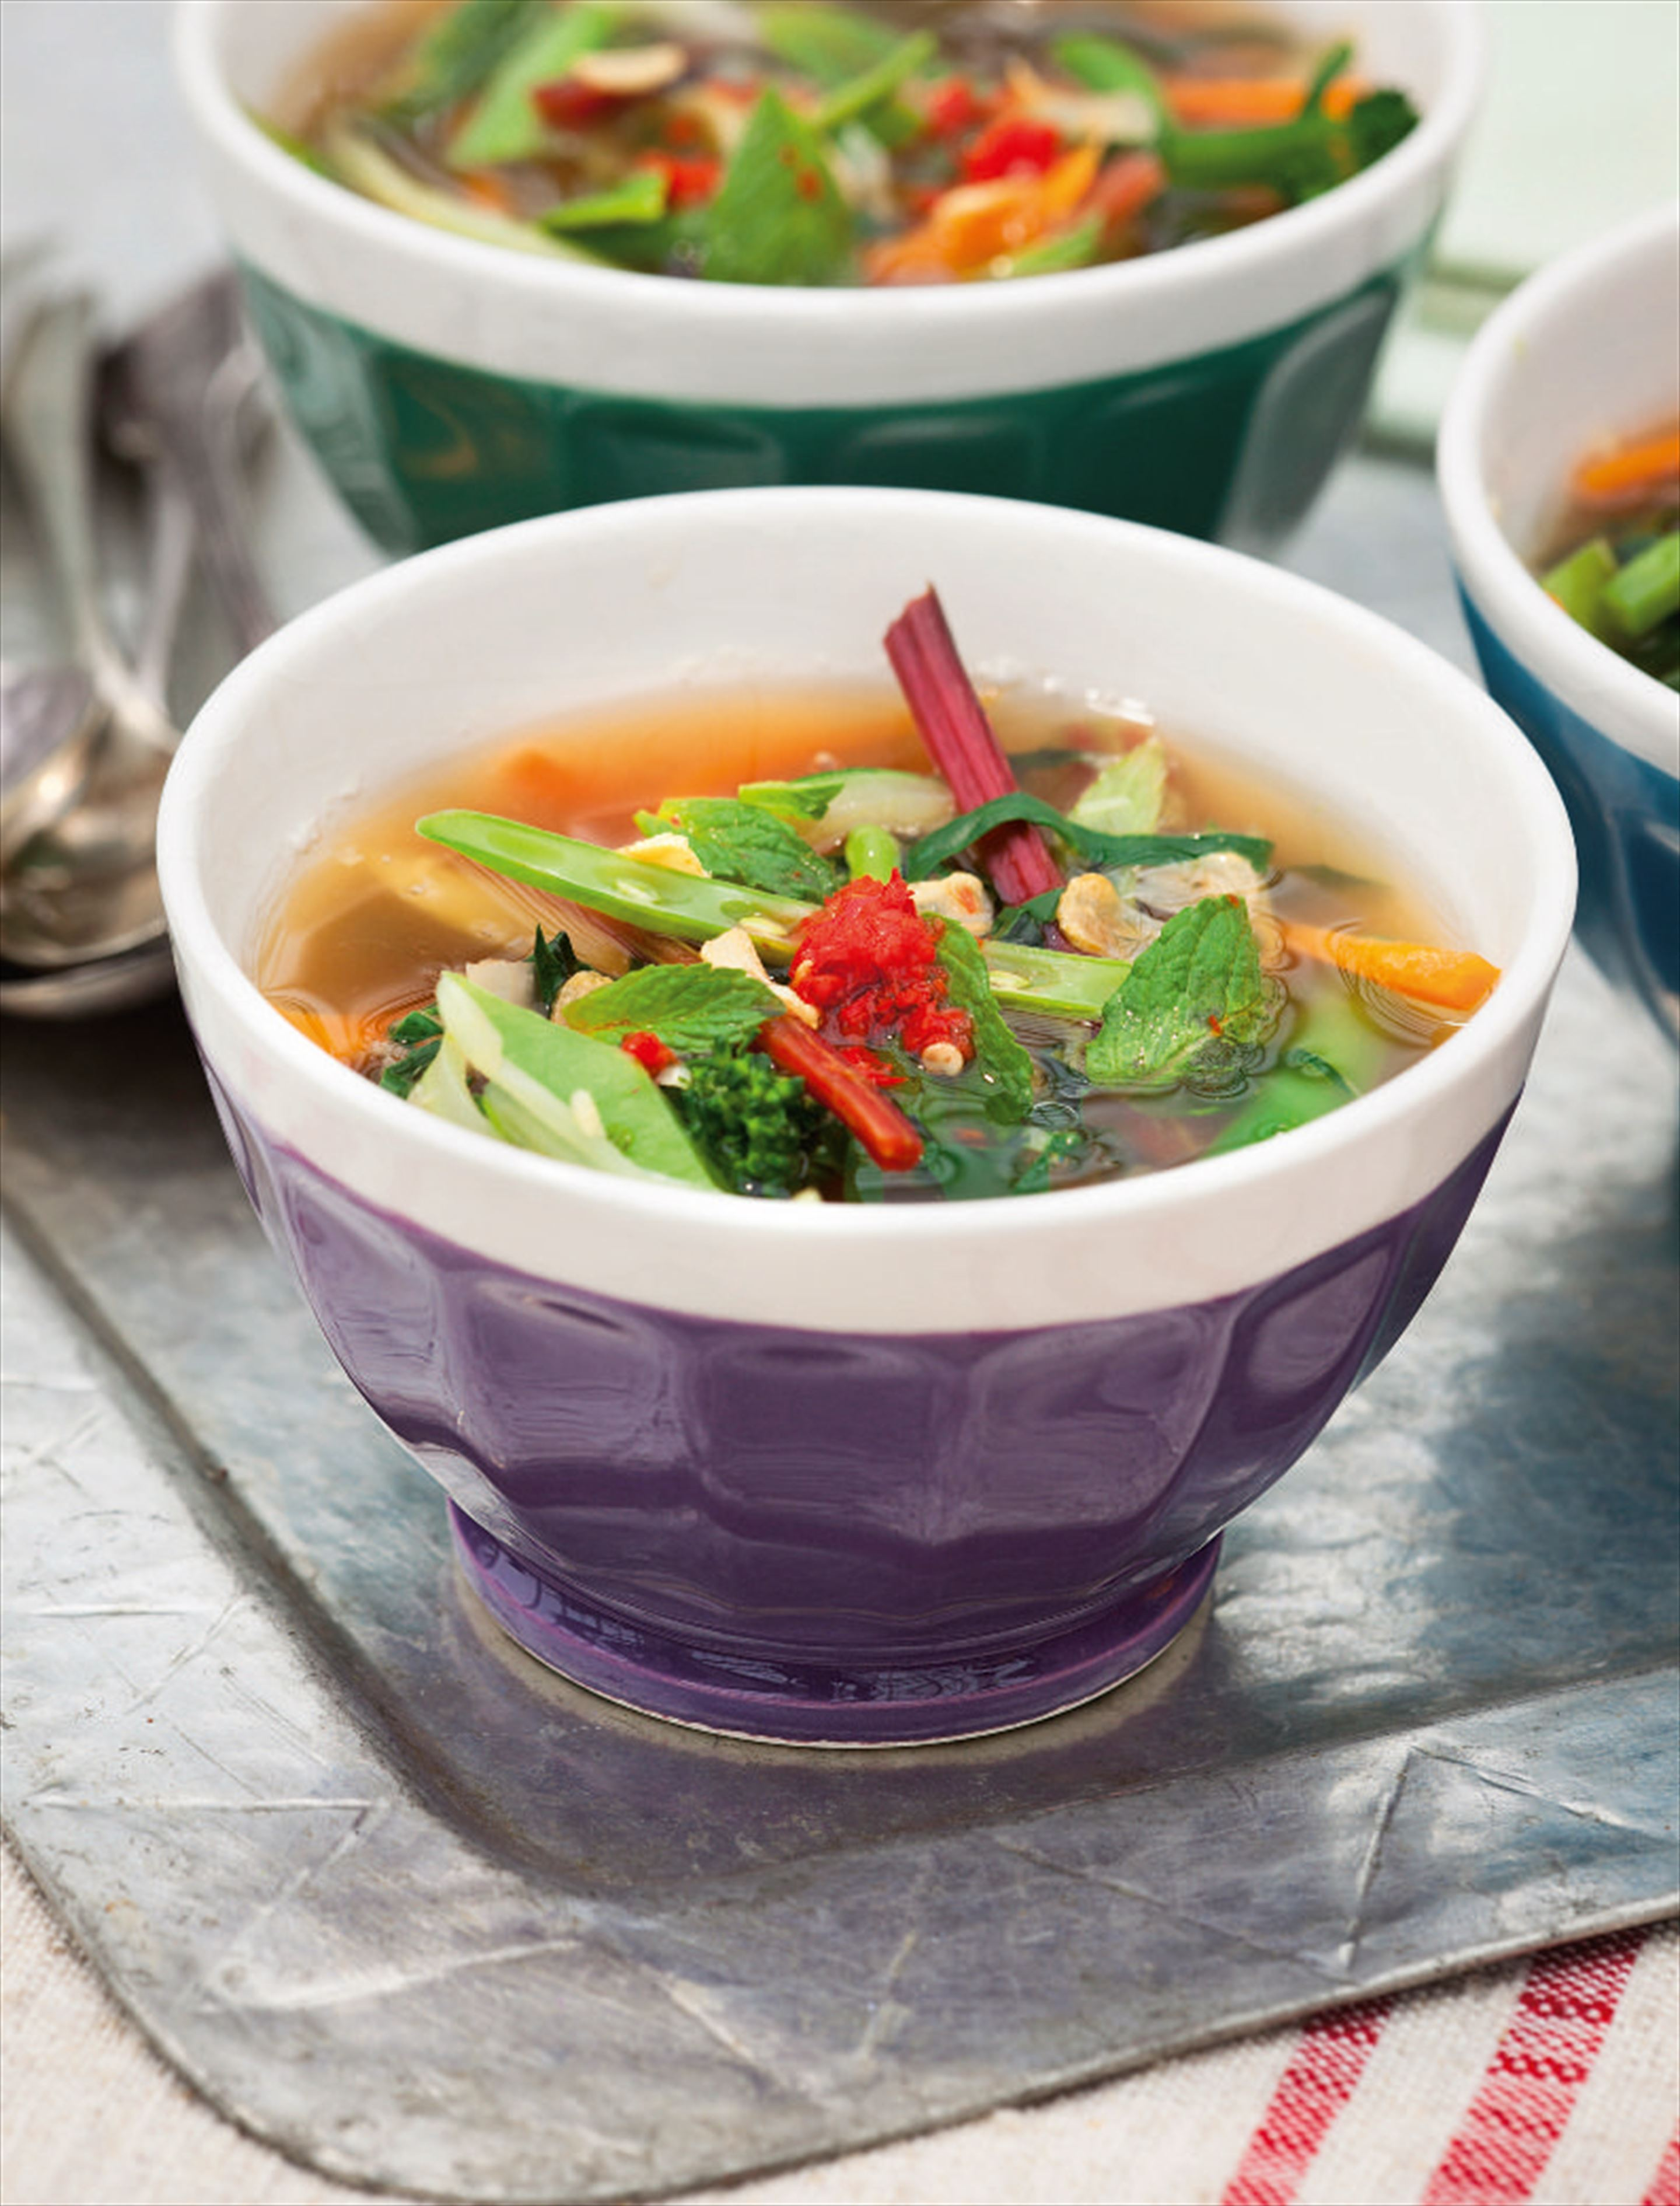 Thai-style vegetable broth with soba noodles